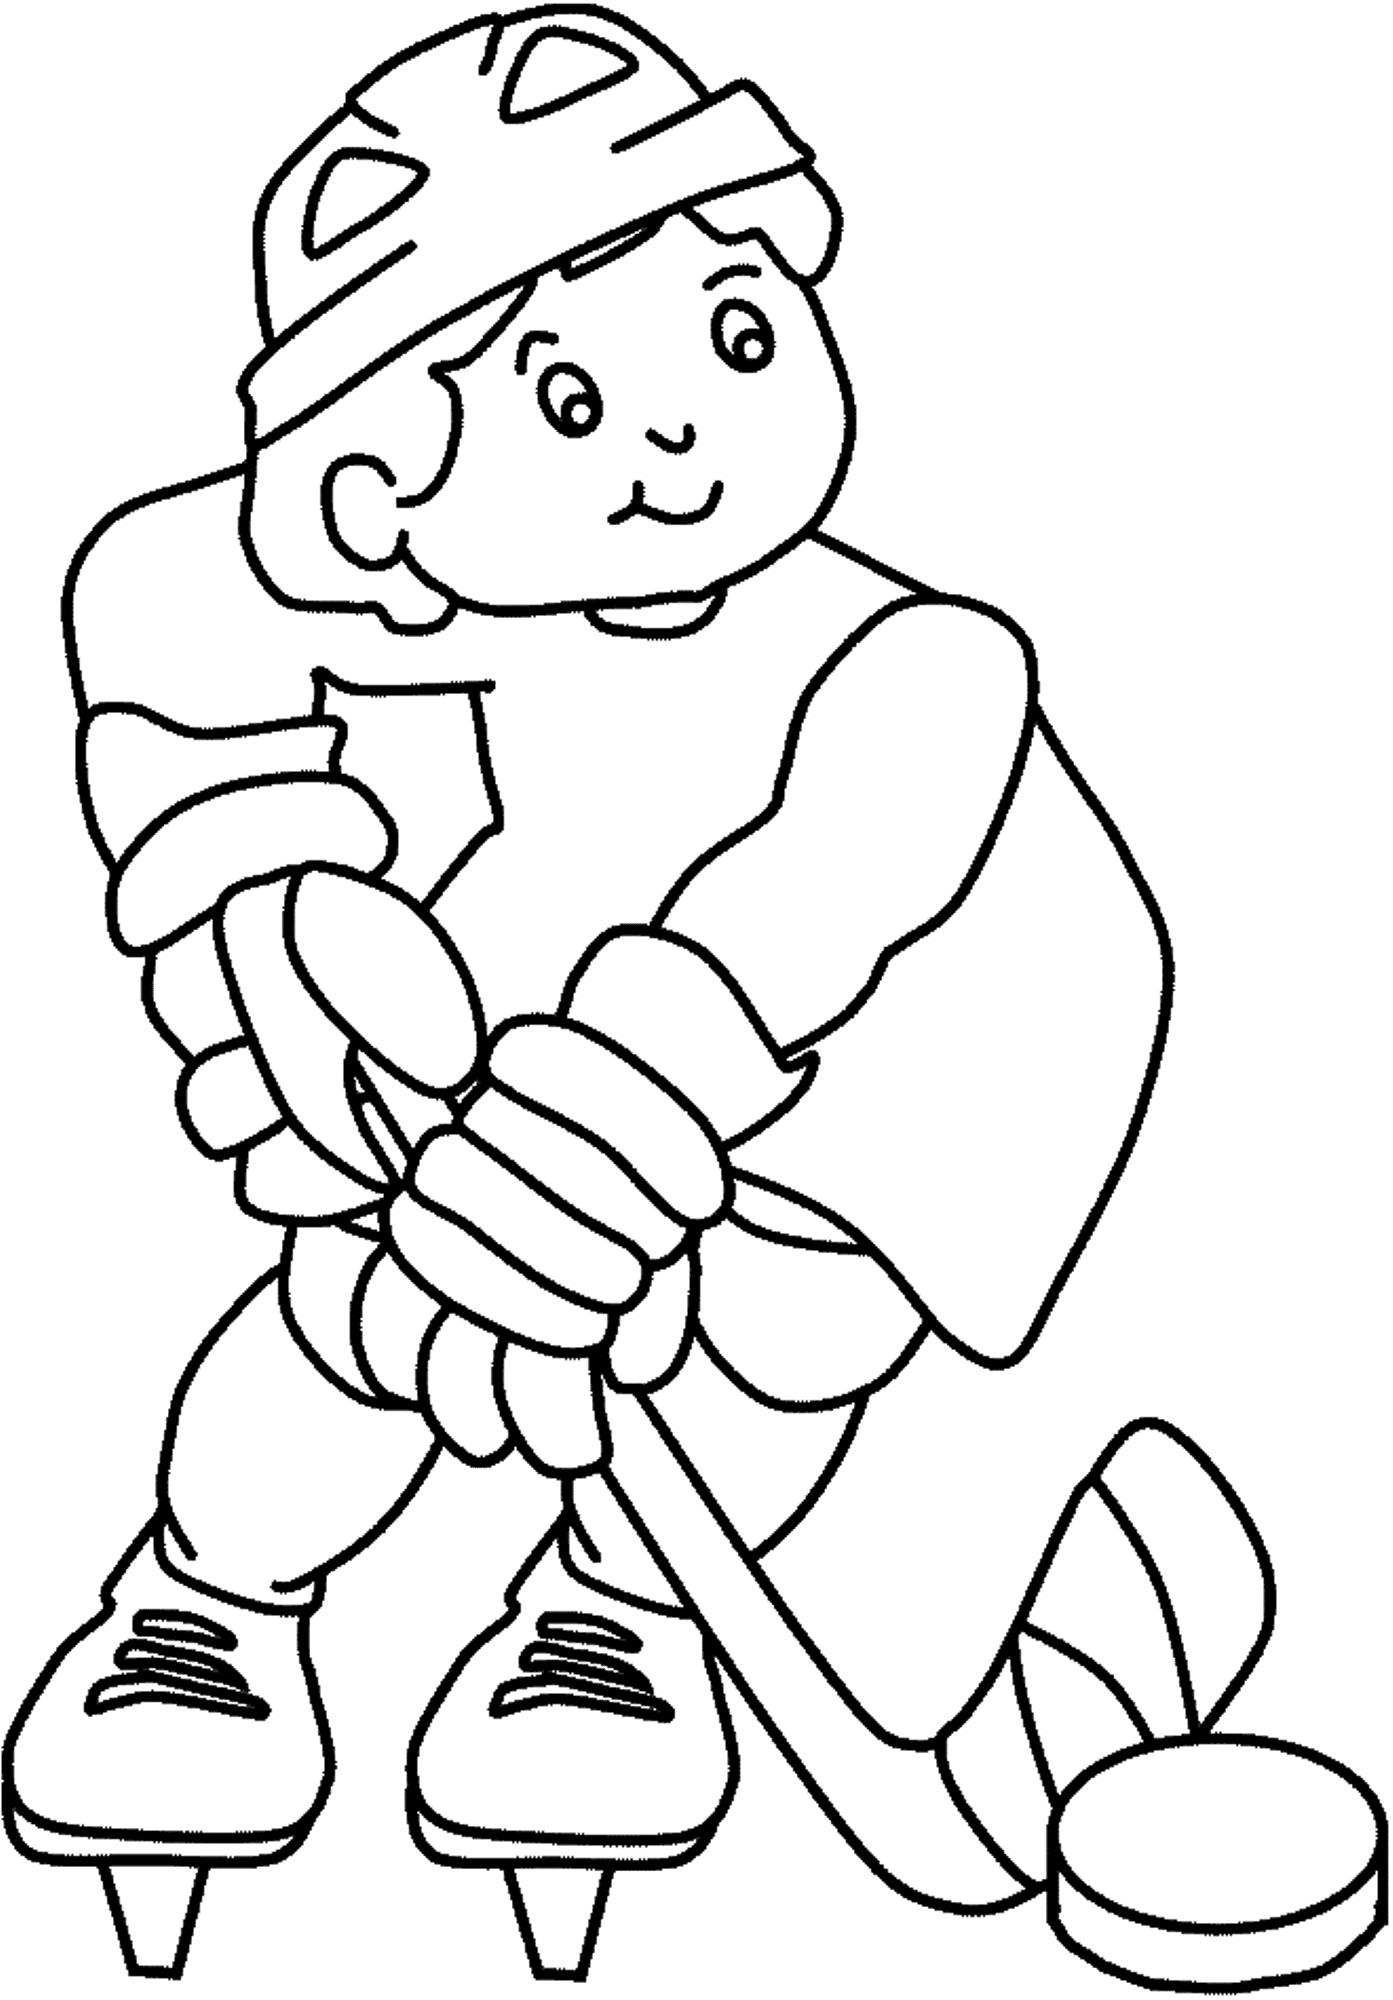 Happily Playing Hockey coloring picture for kids